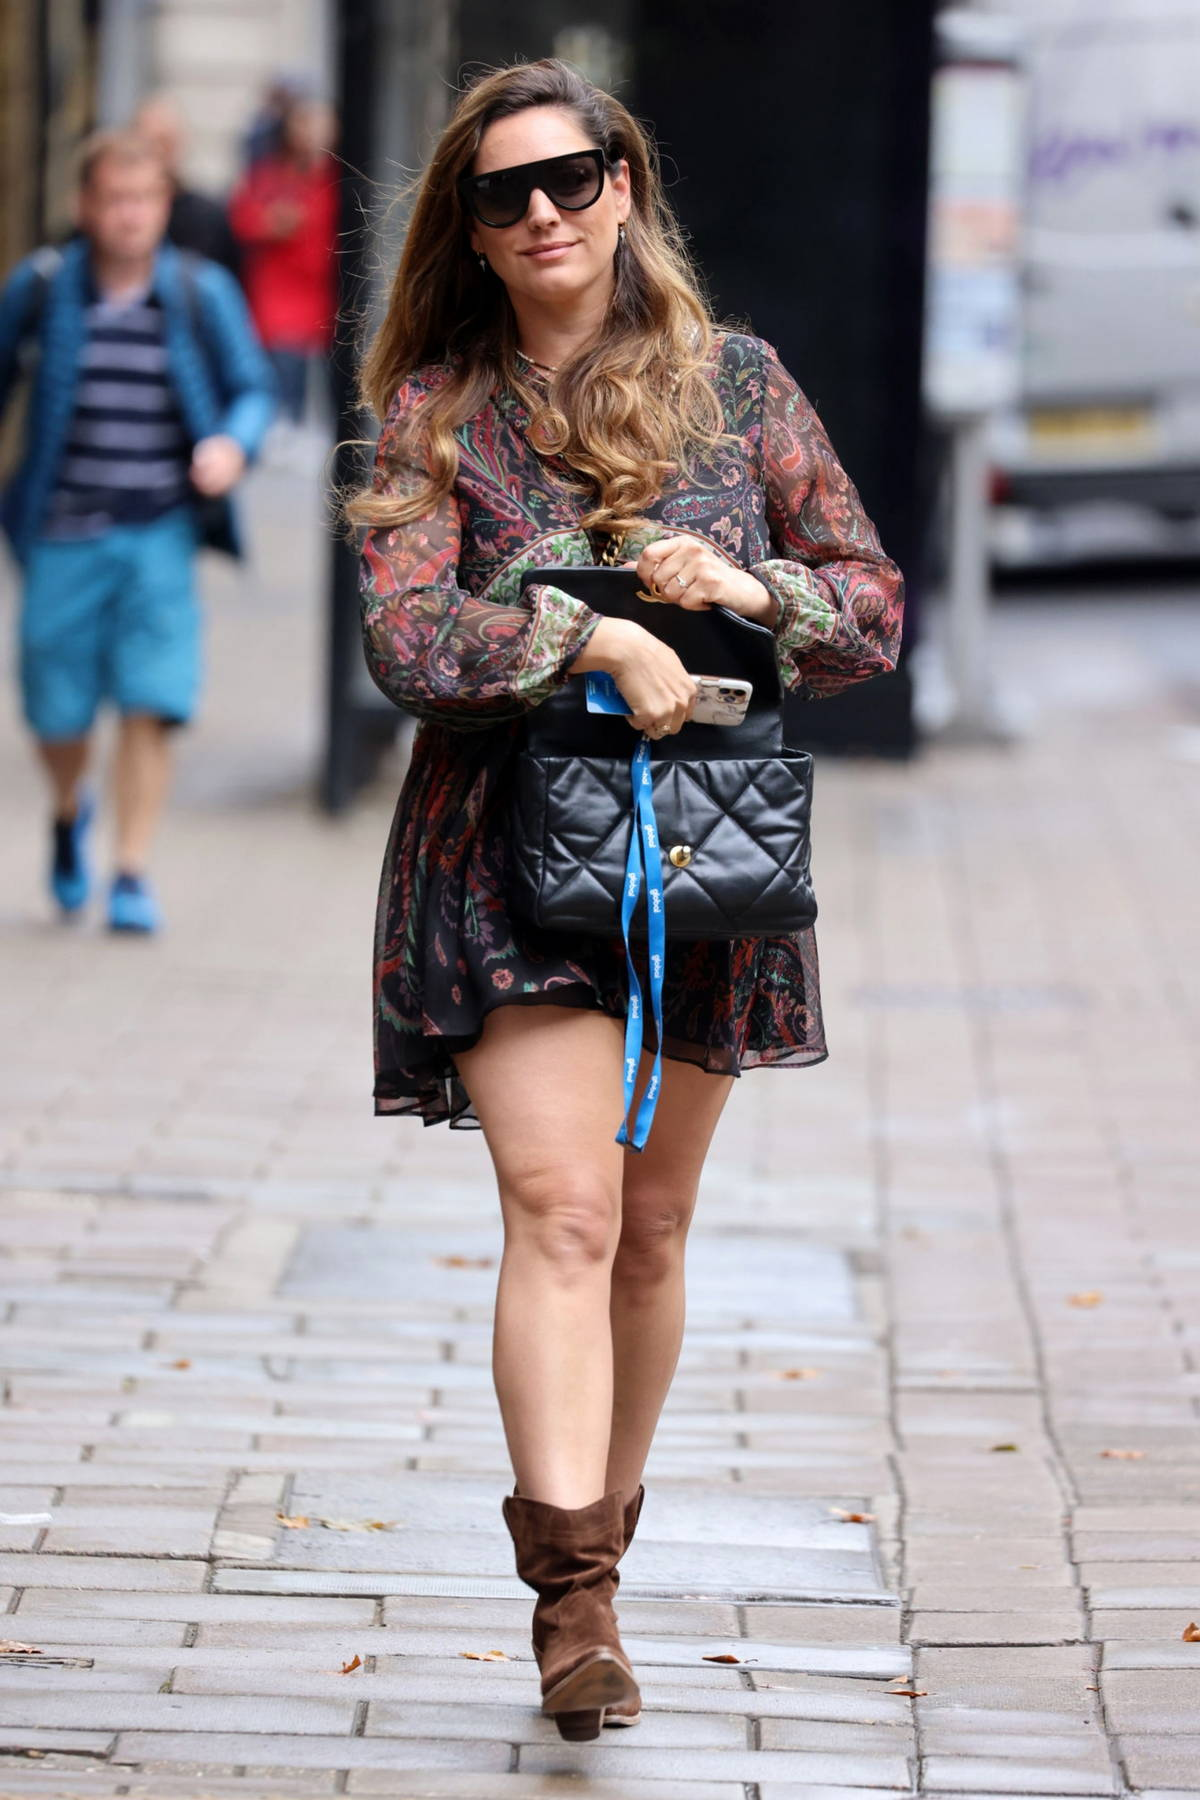 Kelly Brook looks stylish in a floral print mini dress and suede boots while leaving Heart Radio in London, UK